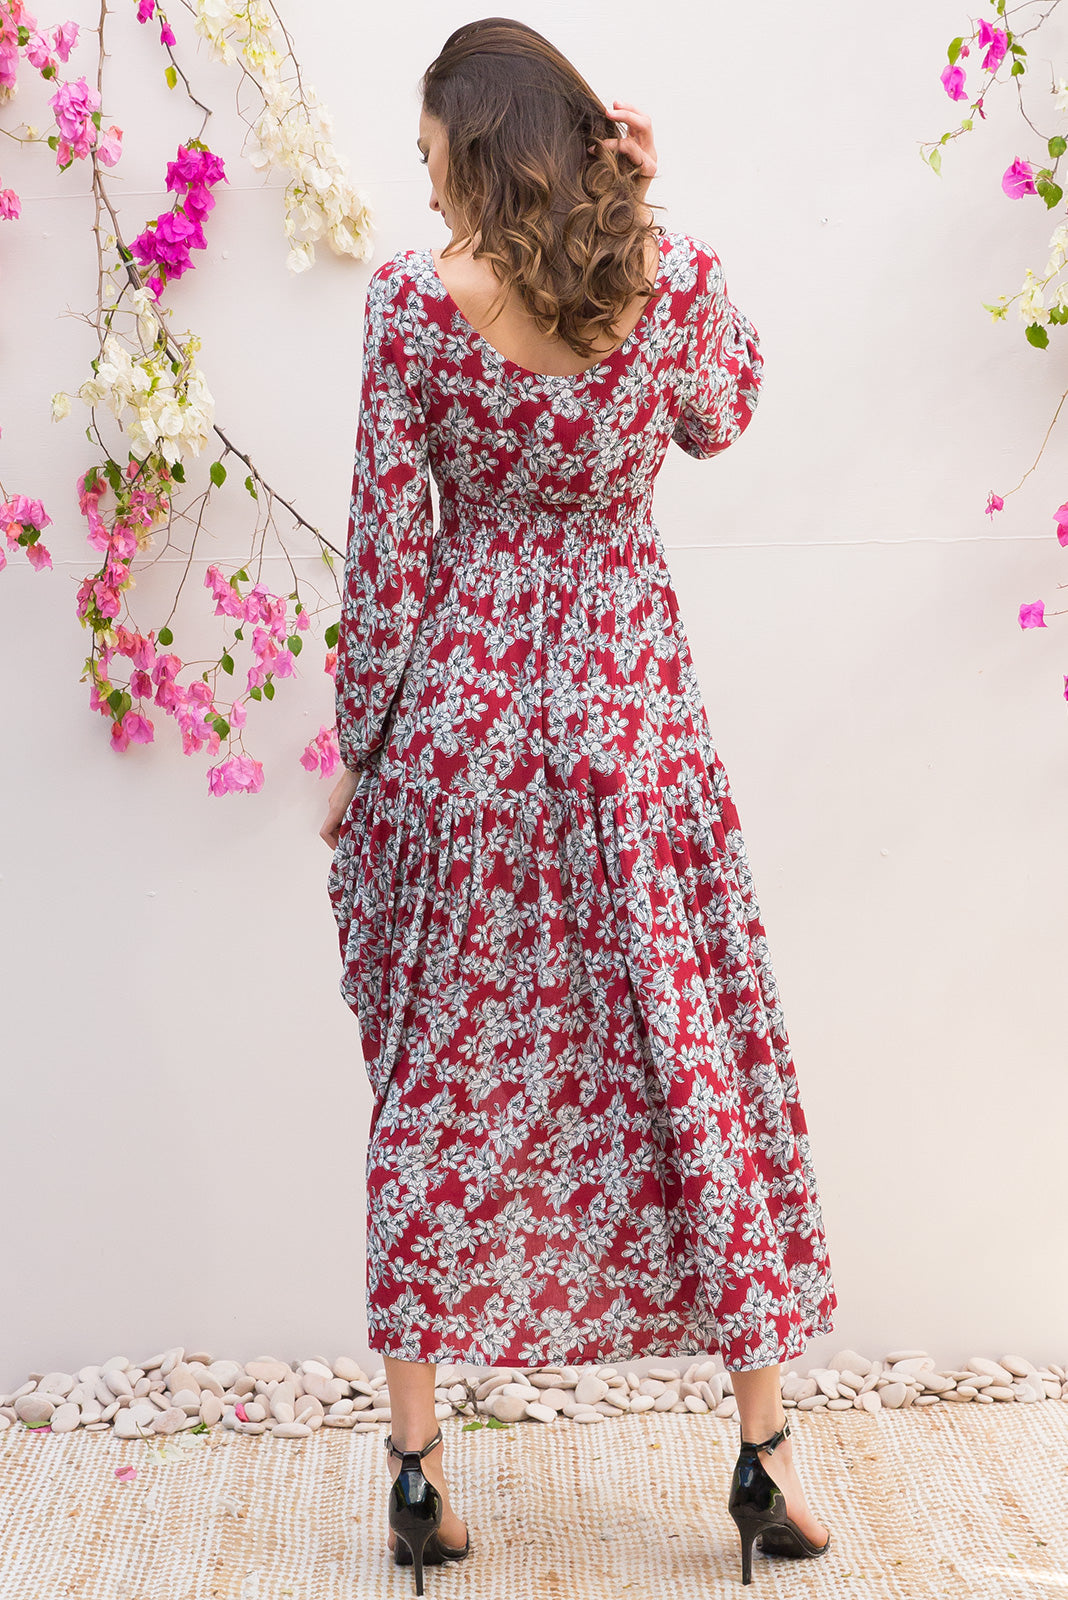 Ruby Red Currant Dress with an empire line elasticated waist dress with a adjustable tie front and tiered skirt in a soft crinkle textured dark red and white small floral print